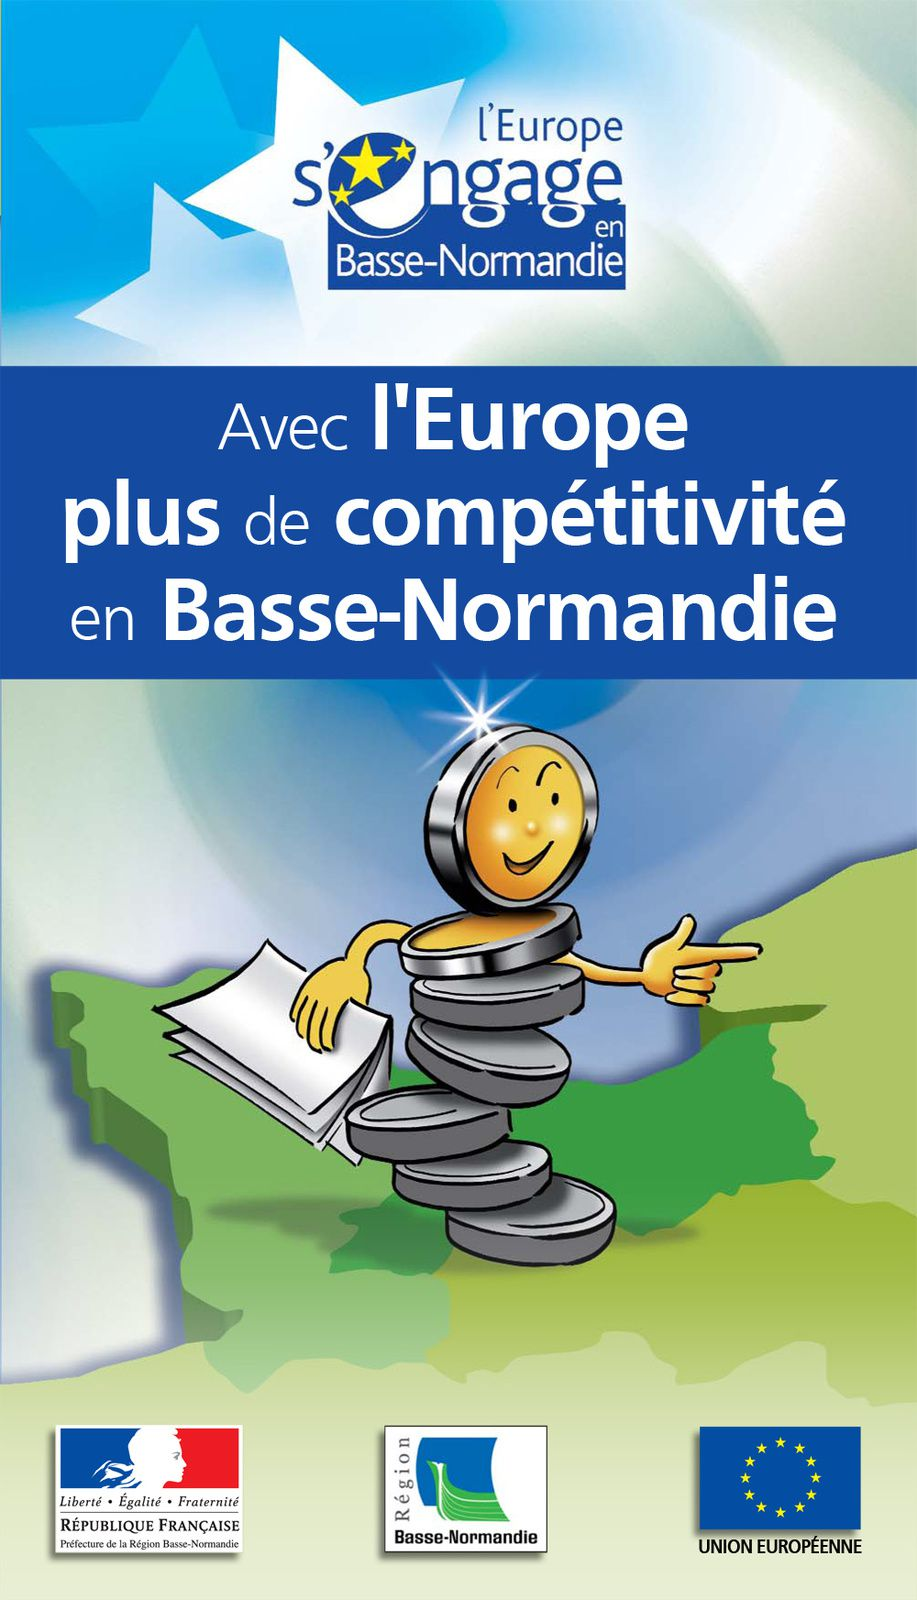 Couverture de la plaquette l'Europe s'engage en Basse-Normandie - Mise en page et intrégration par Dauphin Com'Imprim - Jacques Sourd